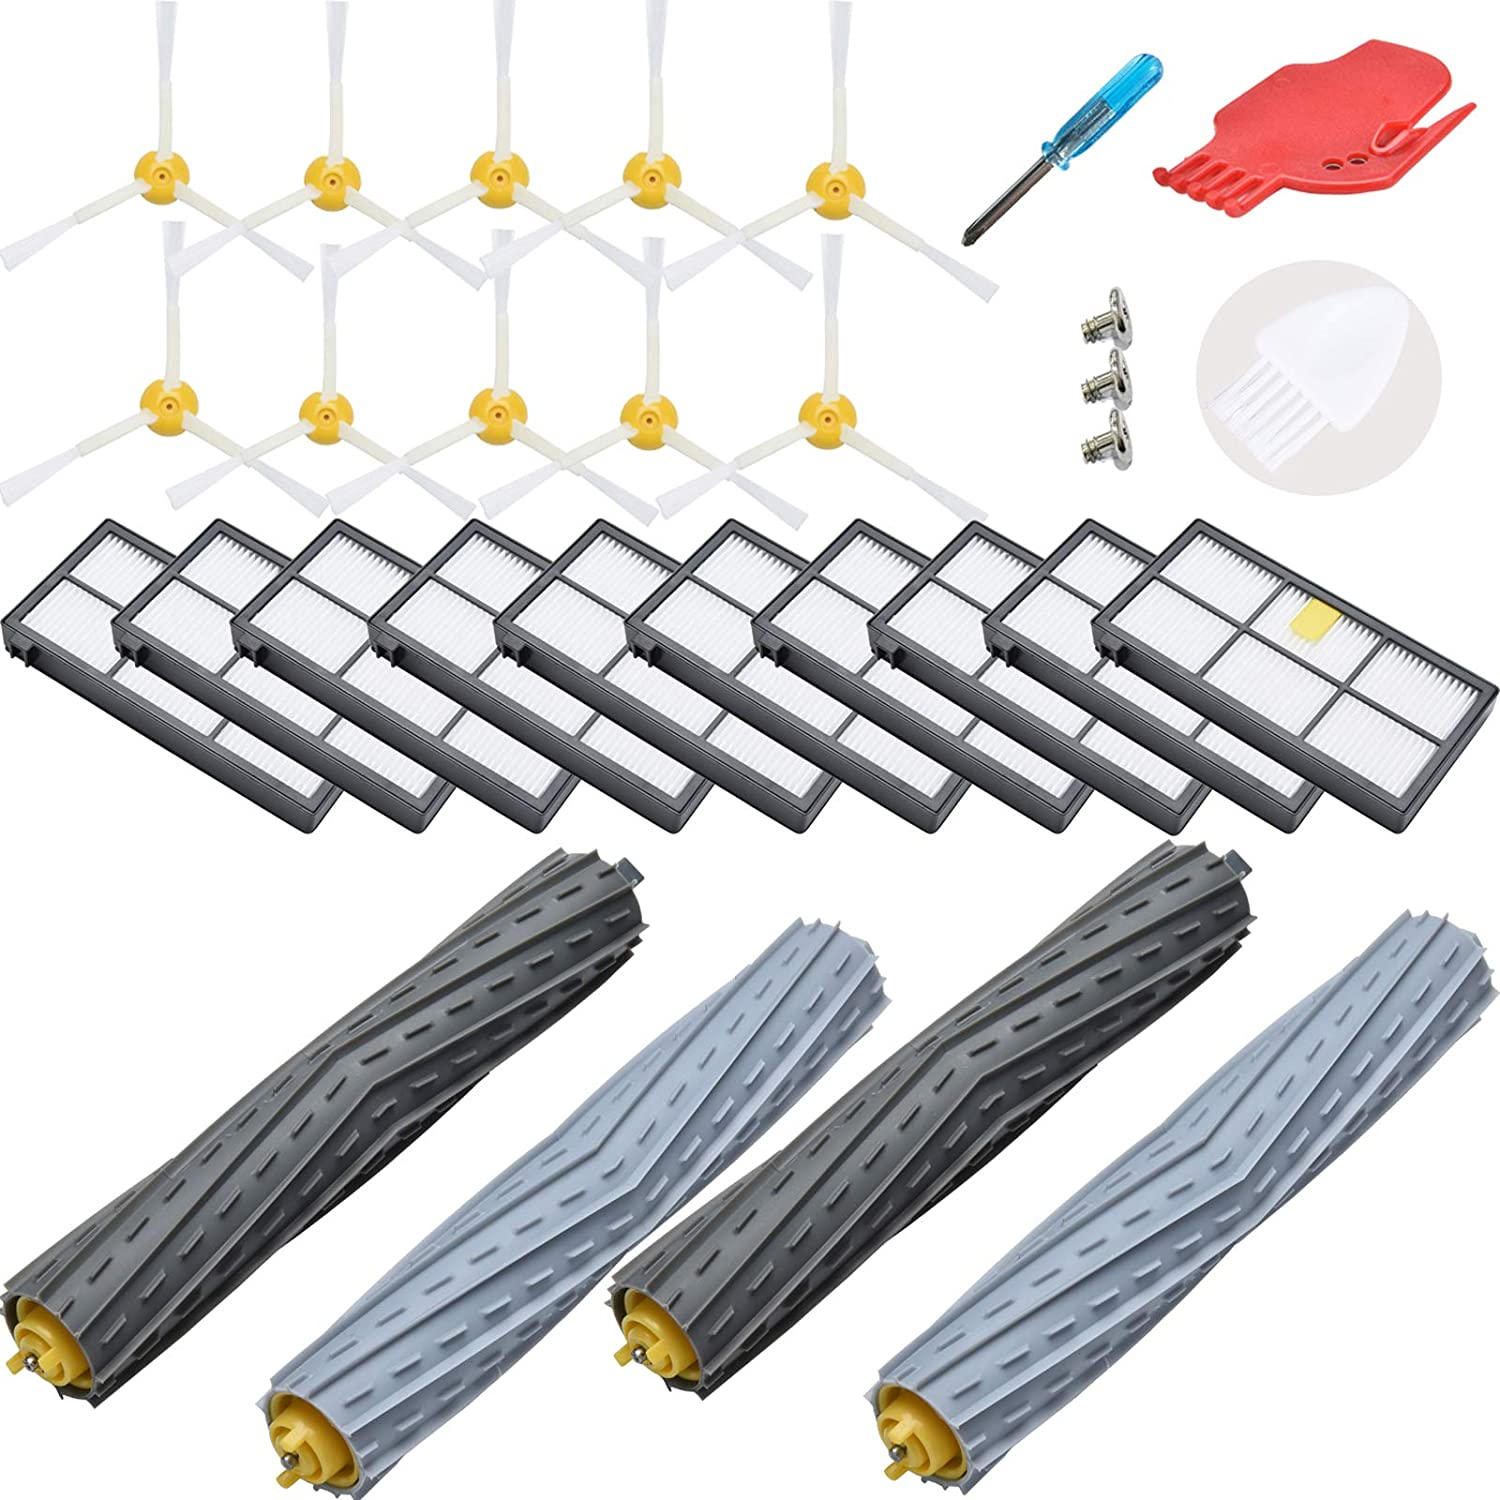 Ciyoon Replacement Parts for iRobot Roomba 860 880 805 860 980 960 Vacuums with 12 Pcs